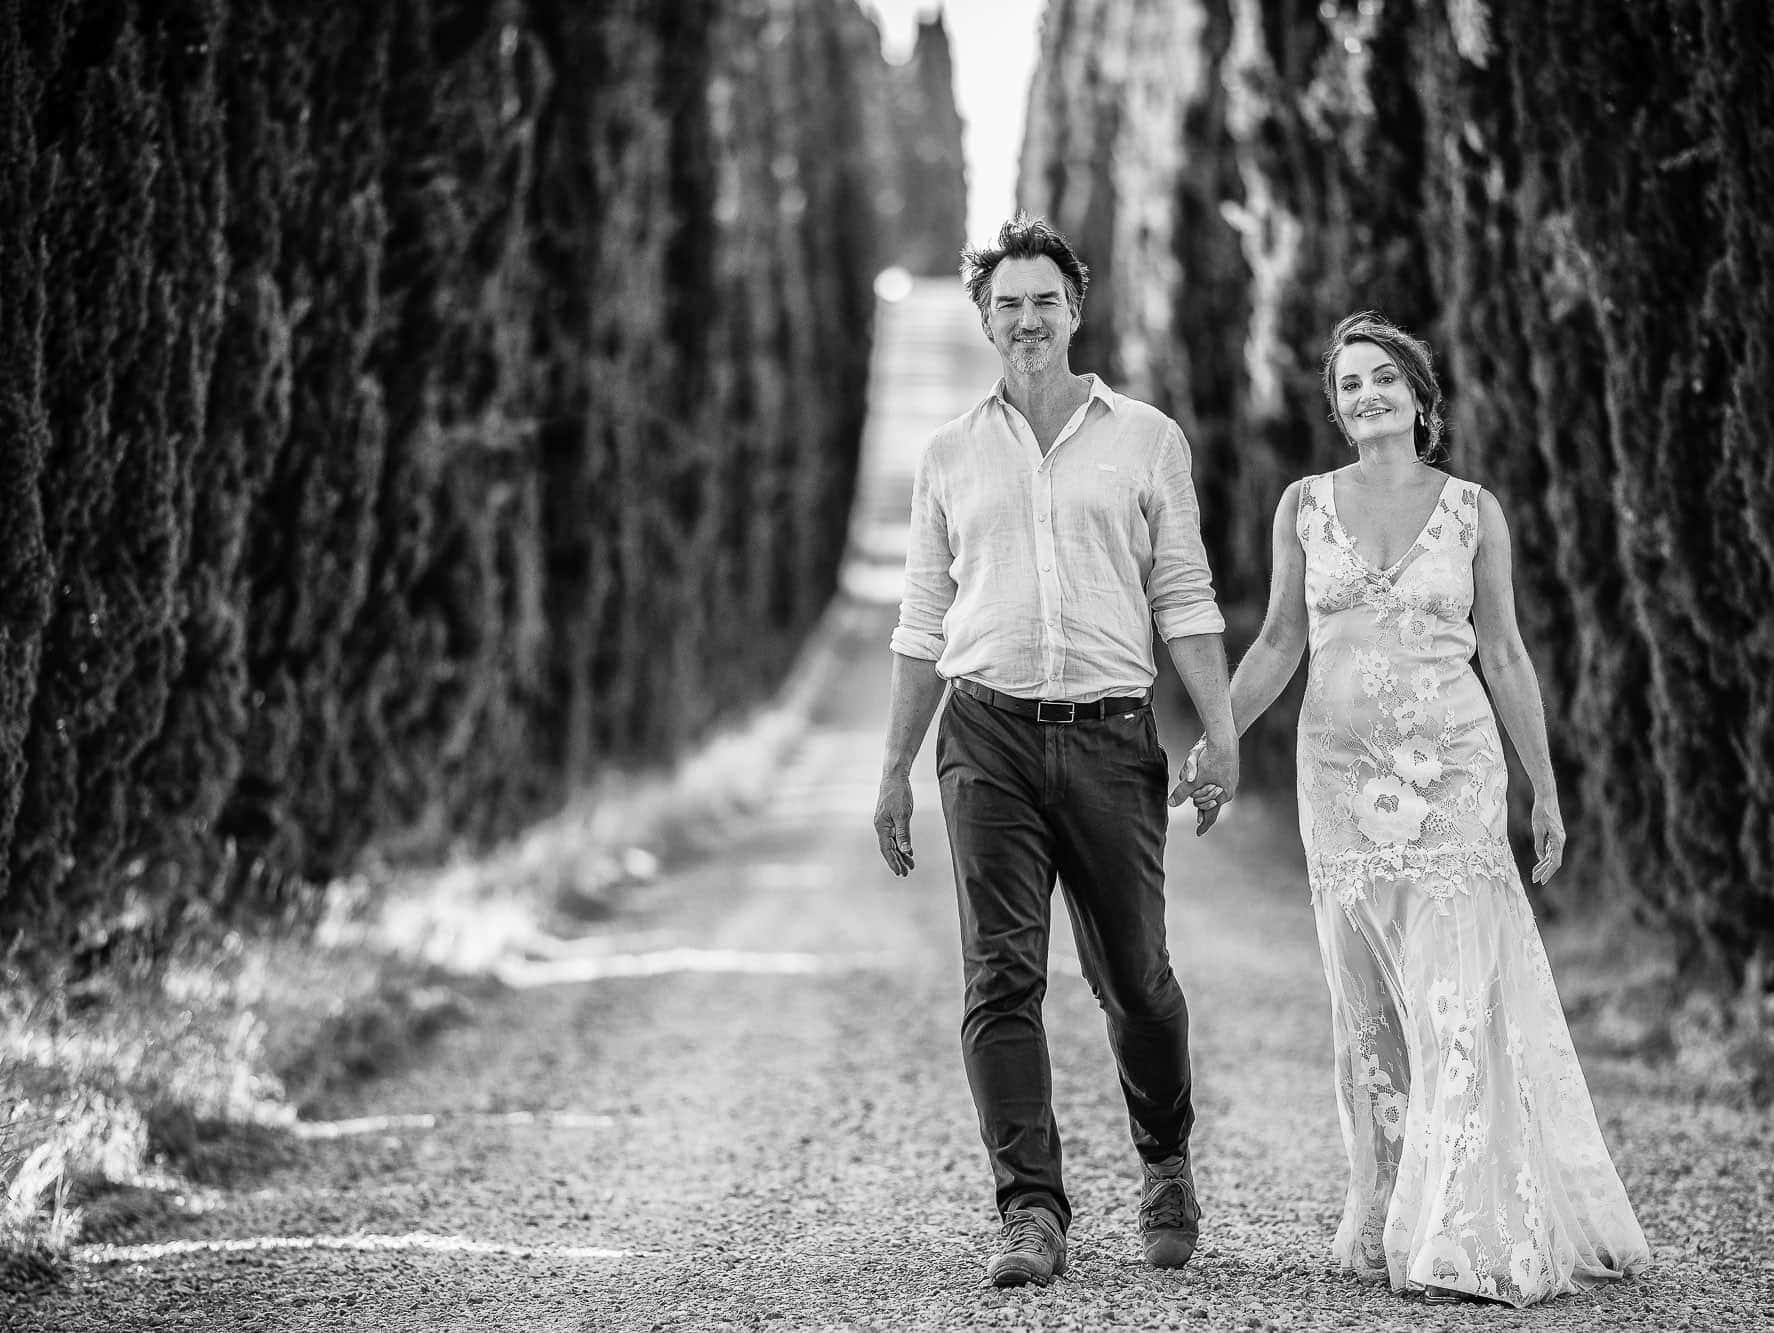 Tansley Photography 2019 - Carol & Paul Tansley in Tuscany on their wedding day